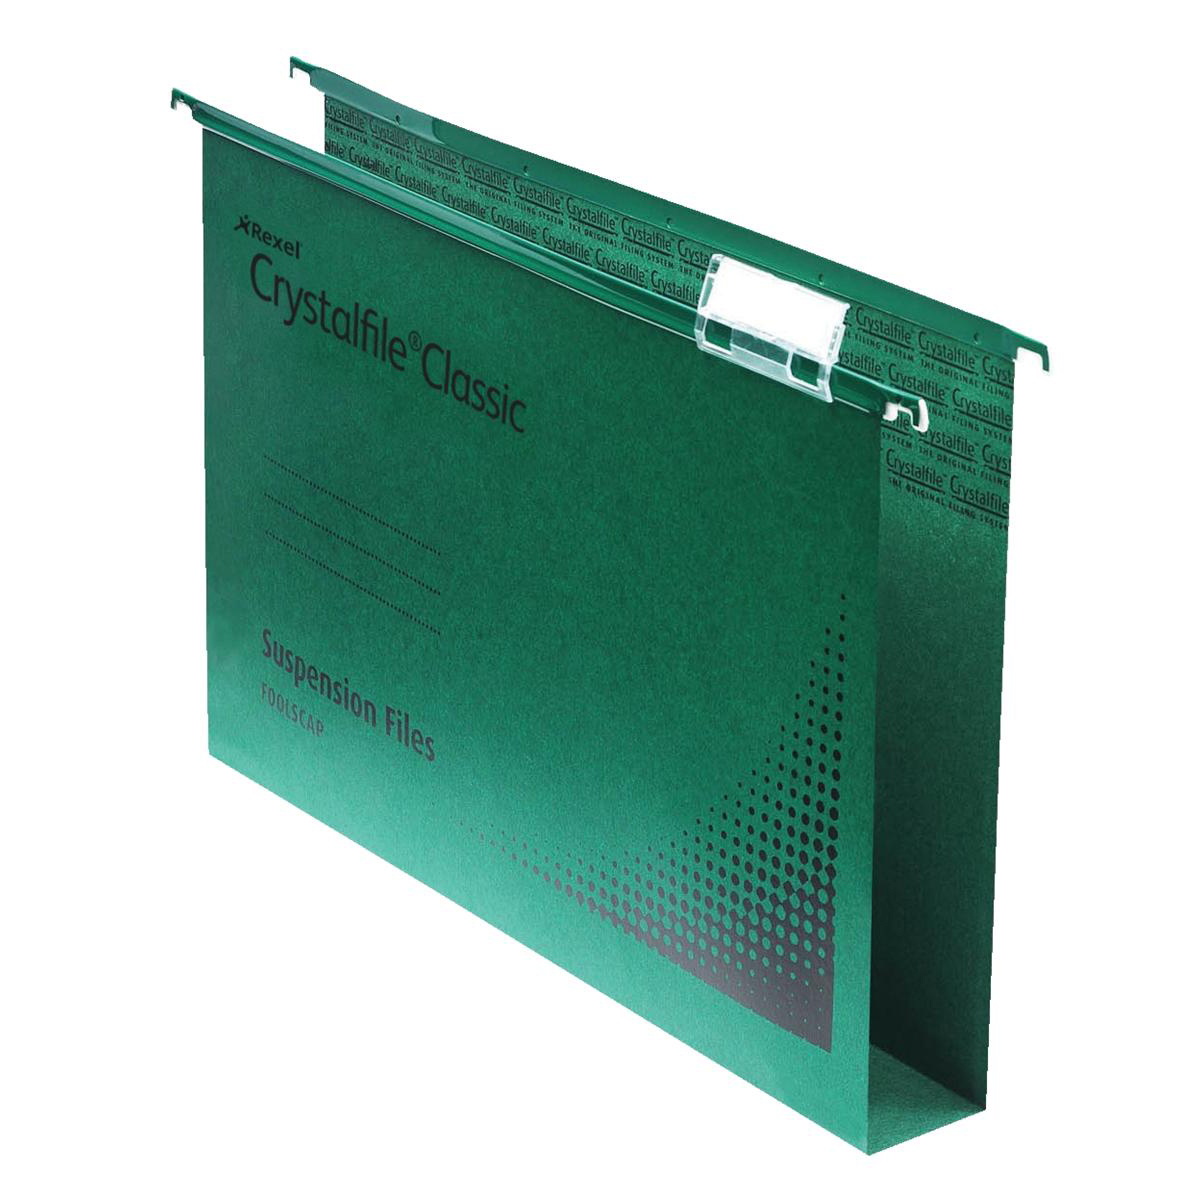 Rexel Crystalfile Classic Suspension File Manilla 30mm Wide-base230gsm Foolscap Green Ref 78041 [Pack 50]